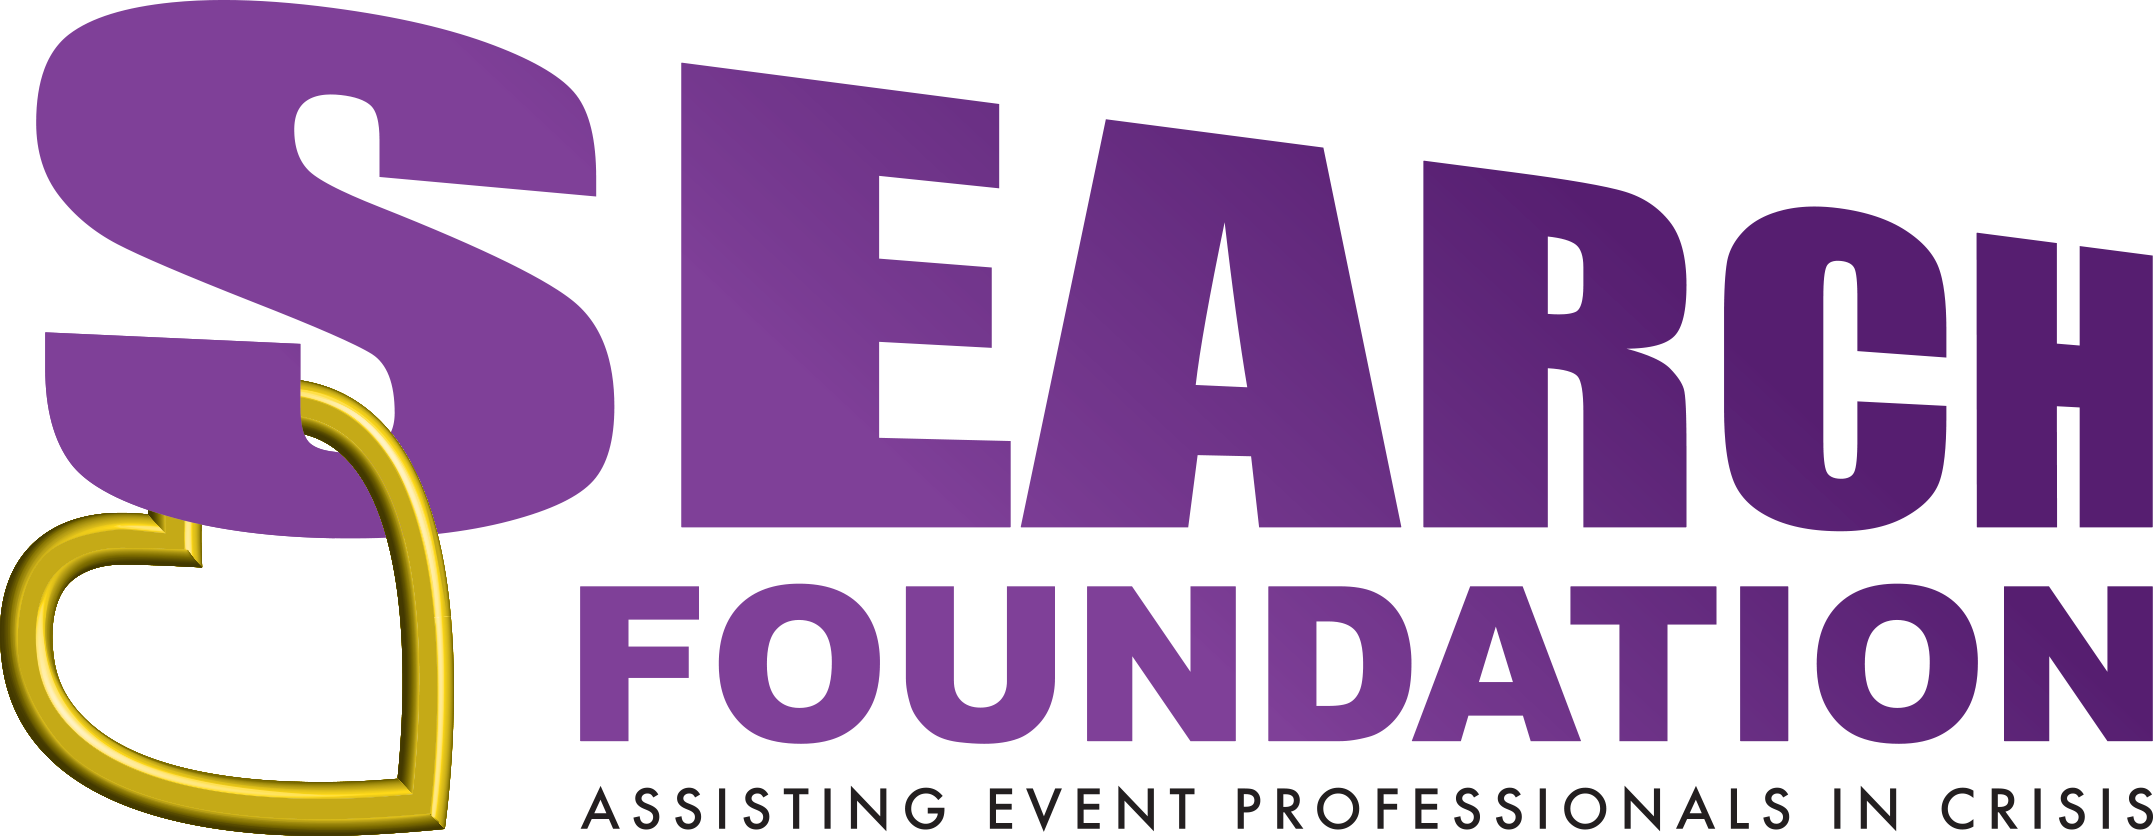 Search Foundation Logo.png